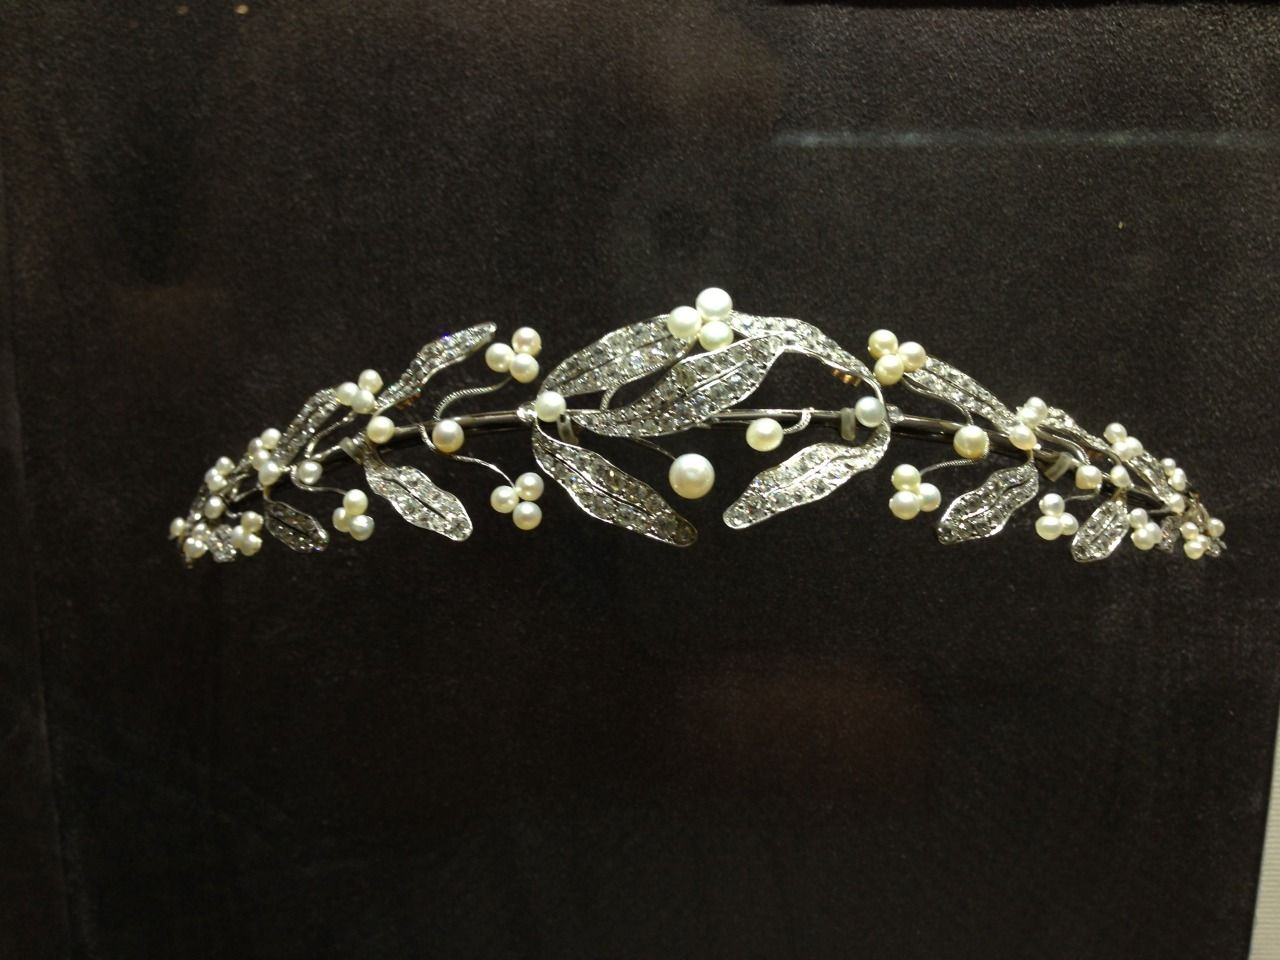 Silver Crown Bettdecken Tiaras And Crowns Tiaras Diamond Tiara Tiaras Crowns Und